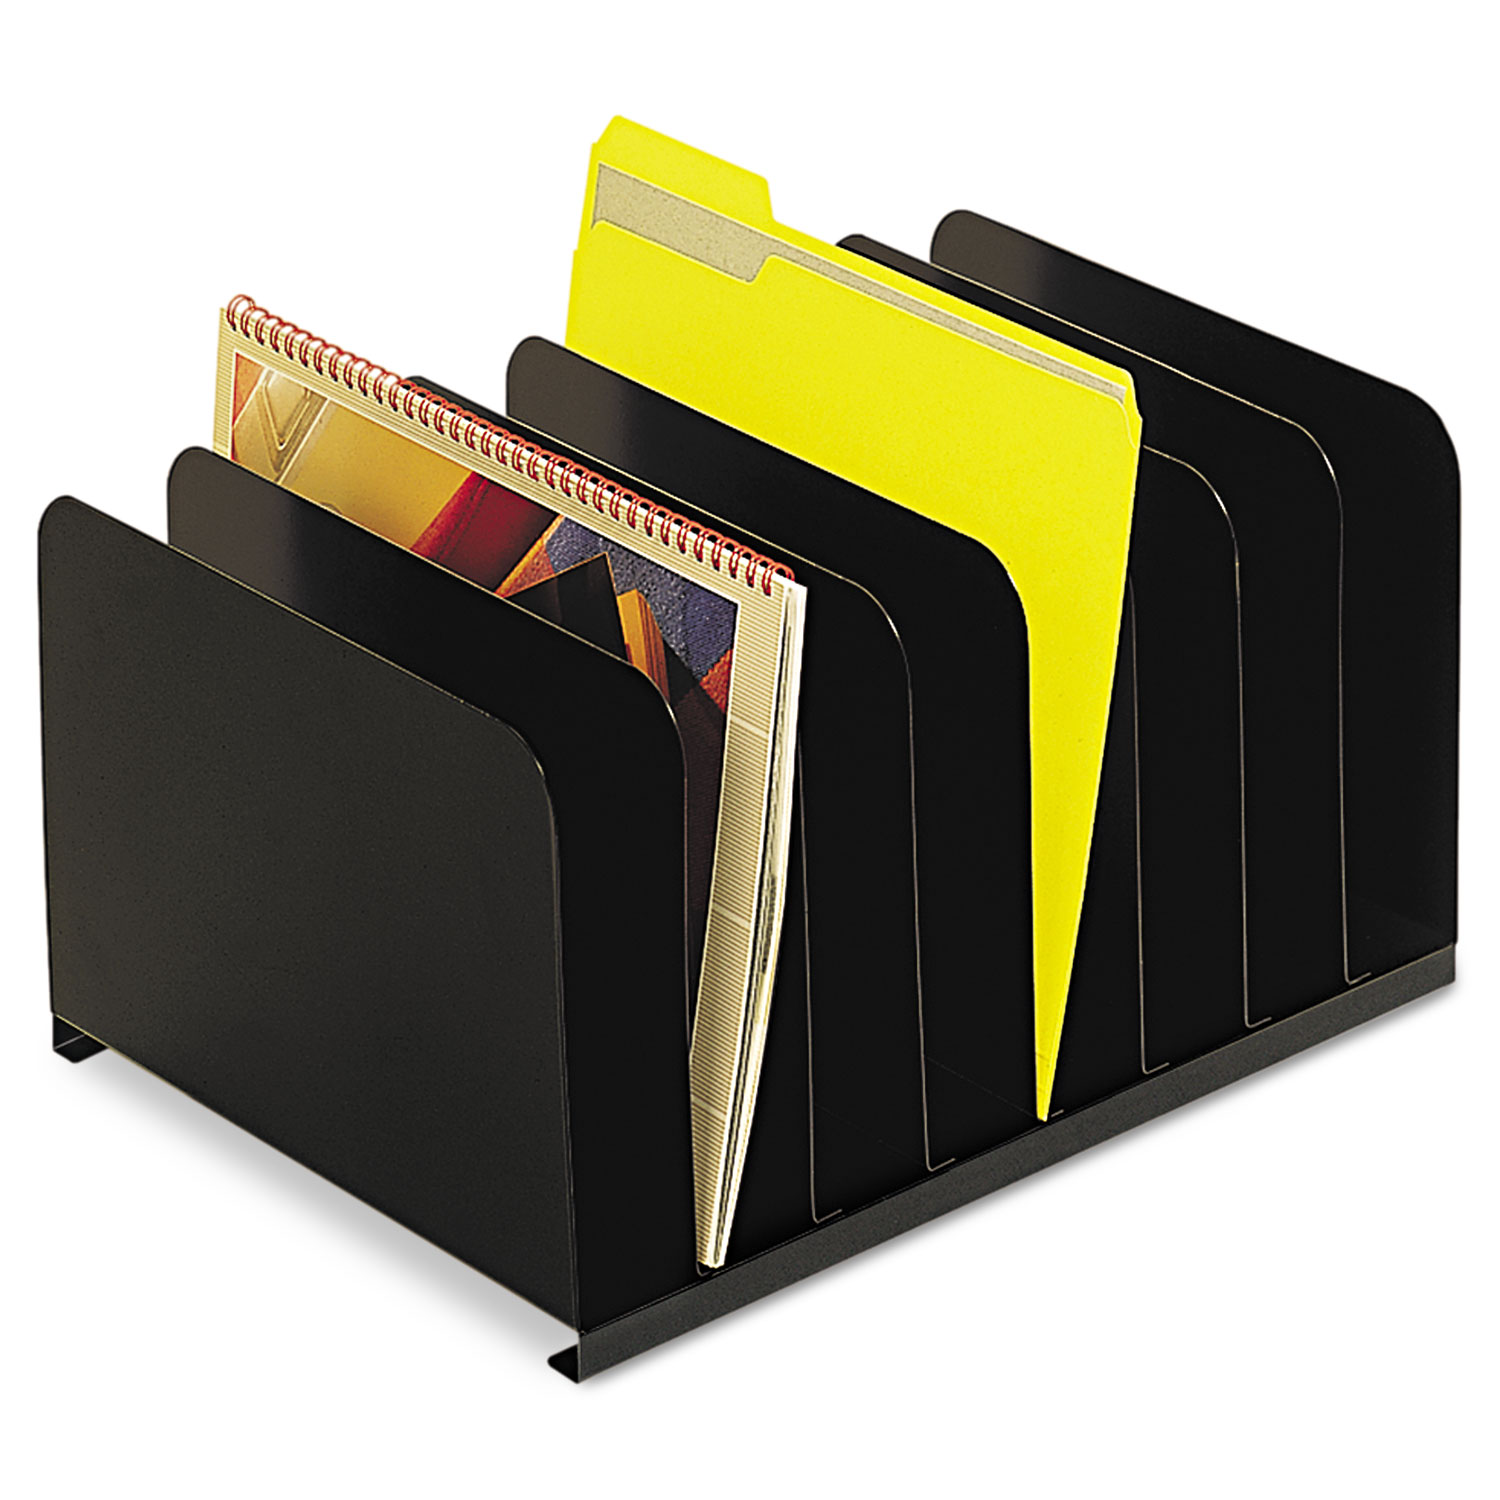 Office Mail Organizer furthermore Wood Look Tile moreover Desk Trays China Office Desk Trays Metal Mesh Stationery File Tray Desk Trays Amazon as well 2013 05 01 archive as well Warehouse Automation. on office depot sorter